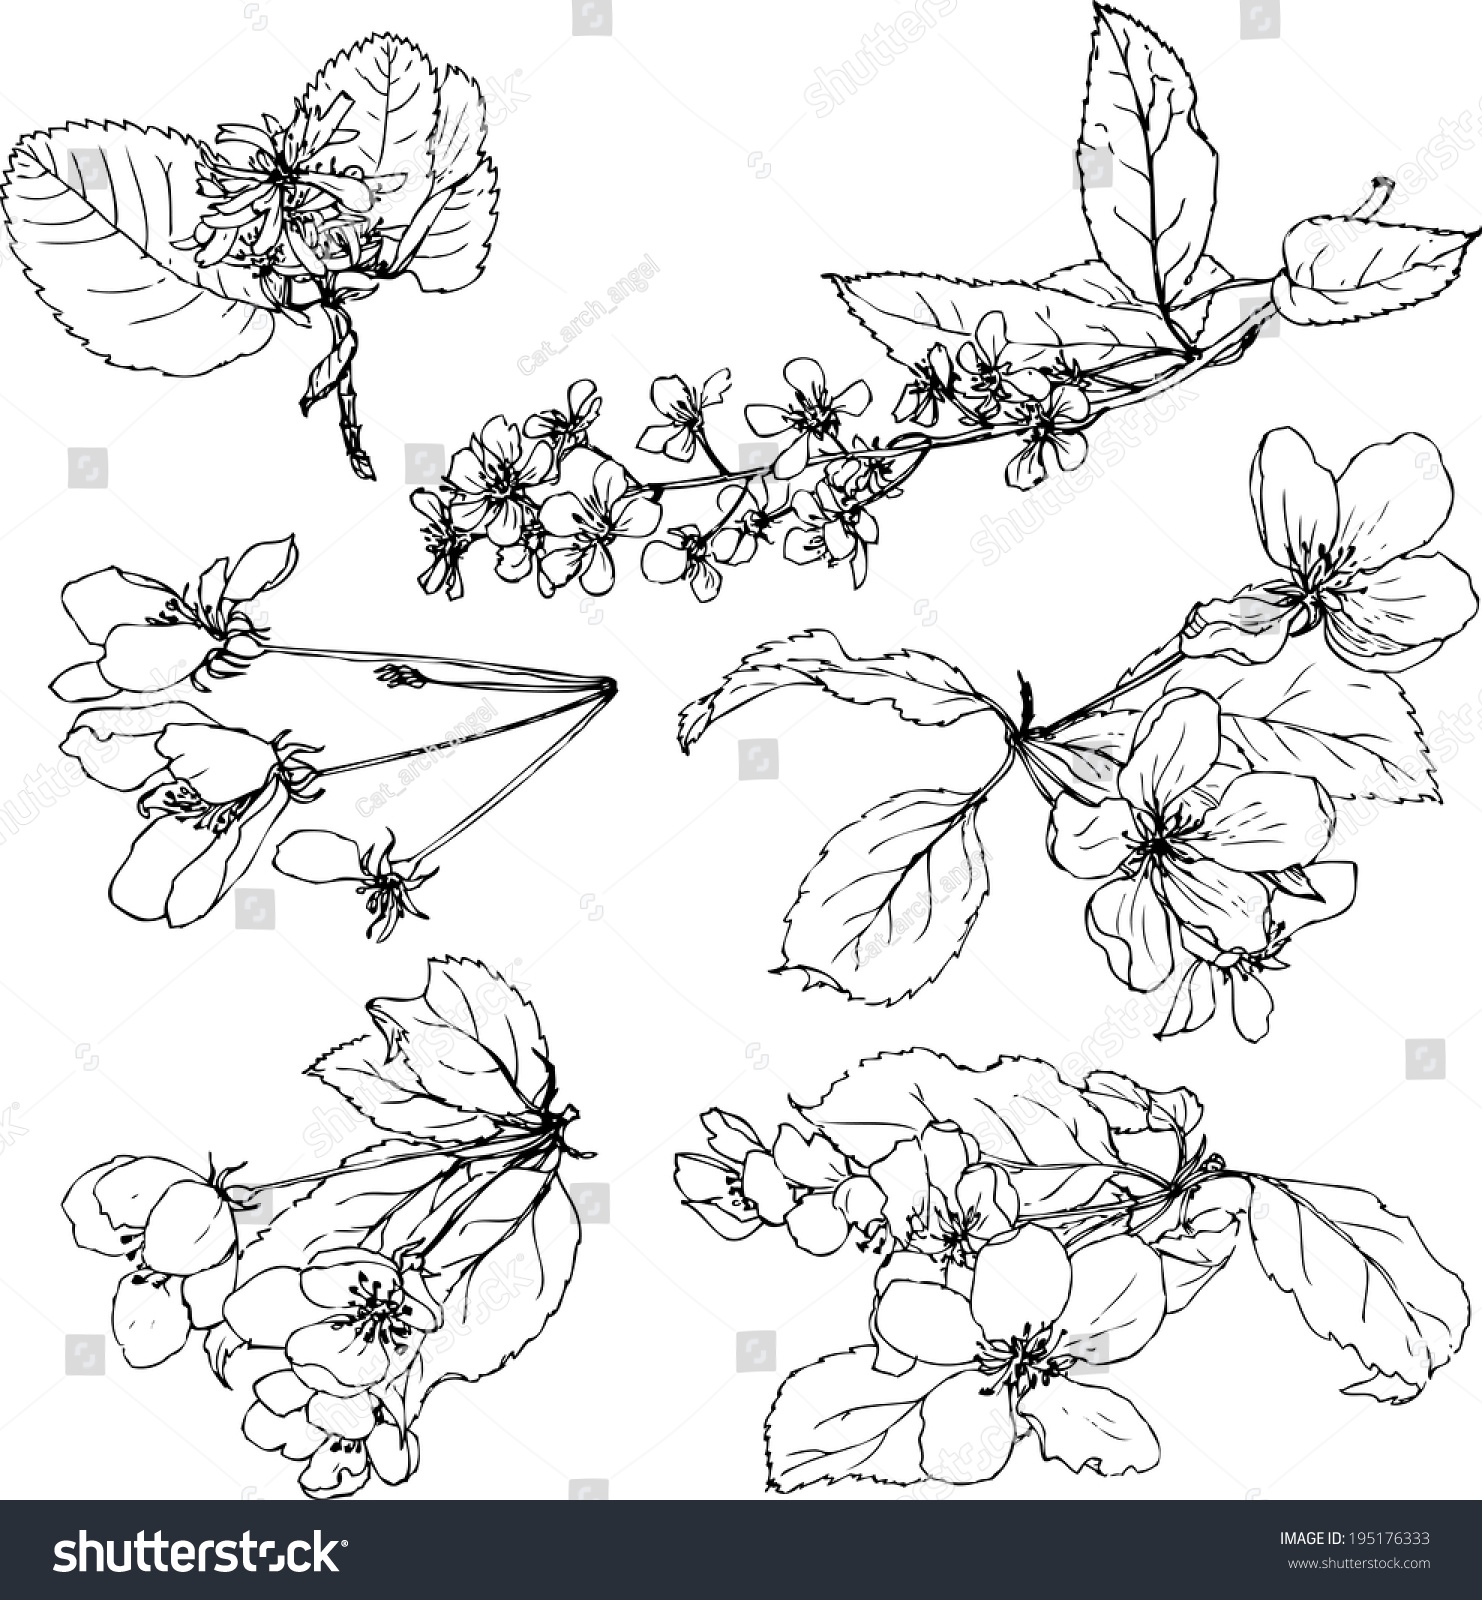 Blossom Flower Line Drawing : Set line drawing flowers treesapple blossoms vectores en